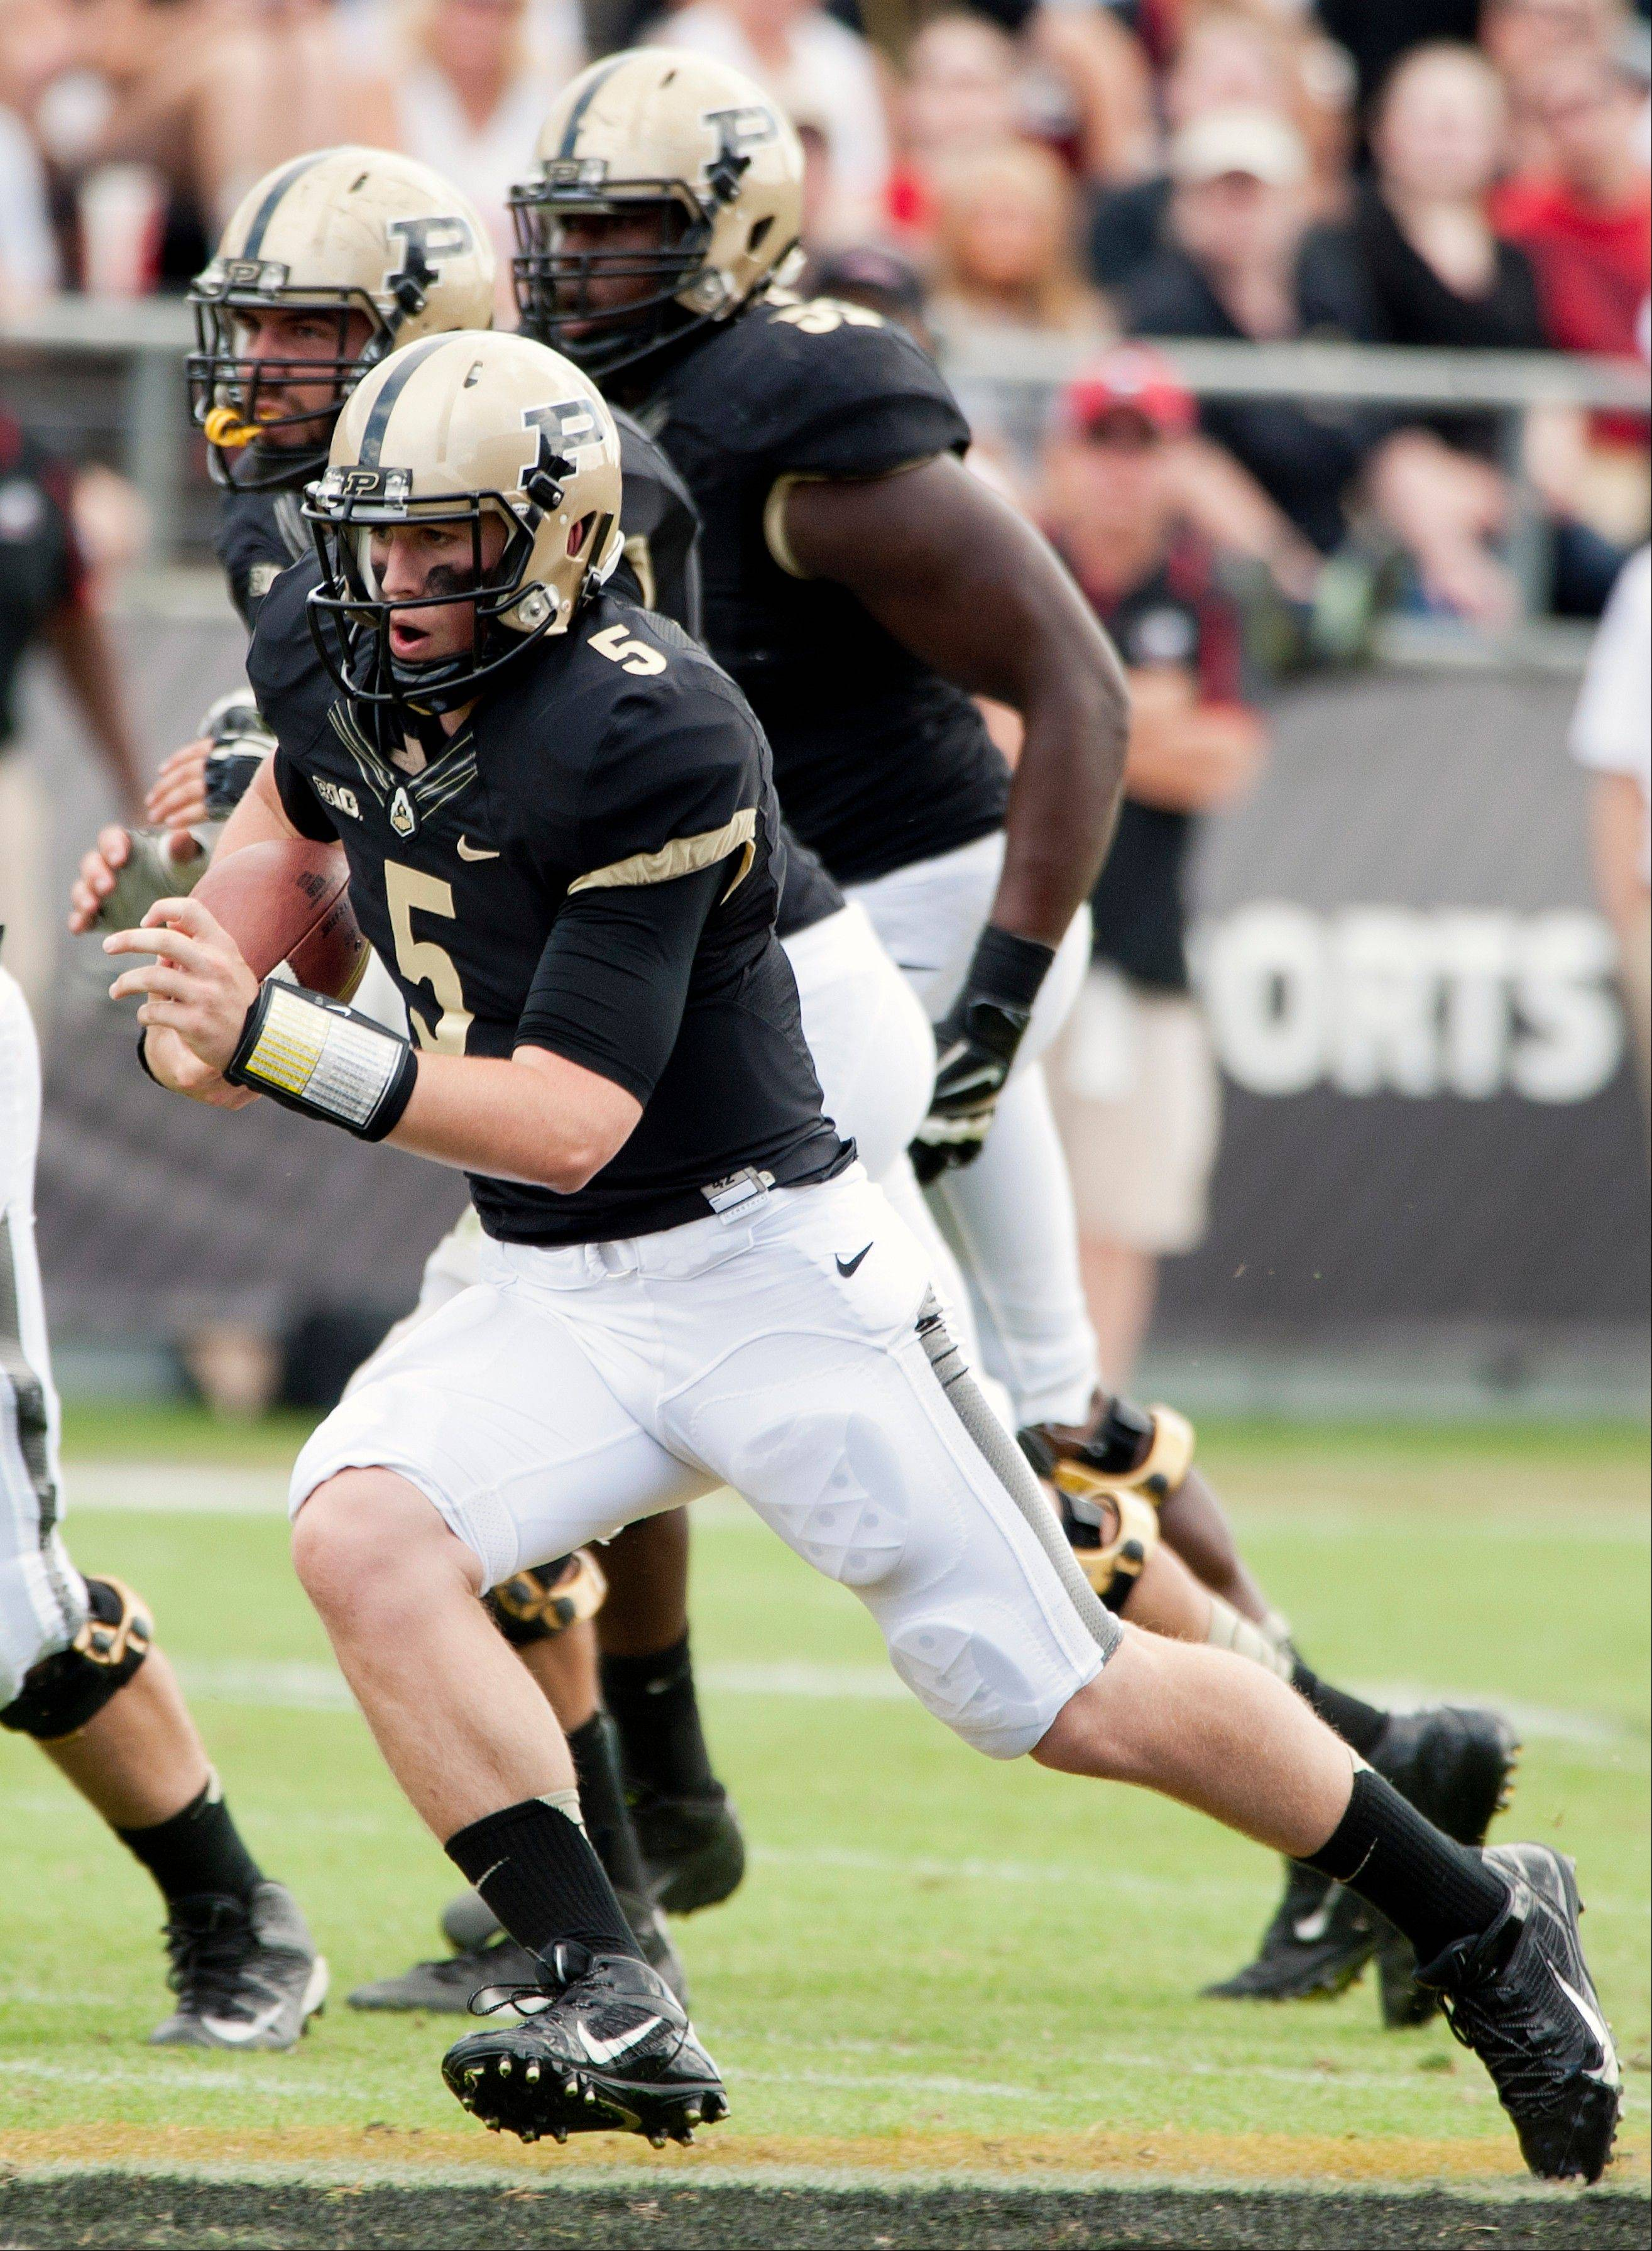 Purdue quarterback Danny Etling scrambles with the ball against Northern Illinois during last Saturday�s game in West Lafayette, Ind.